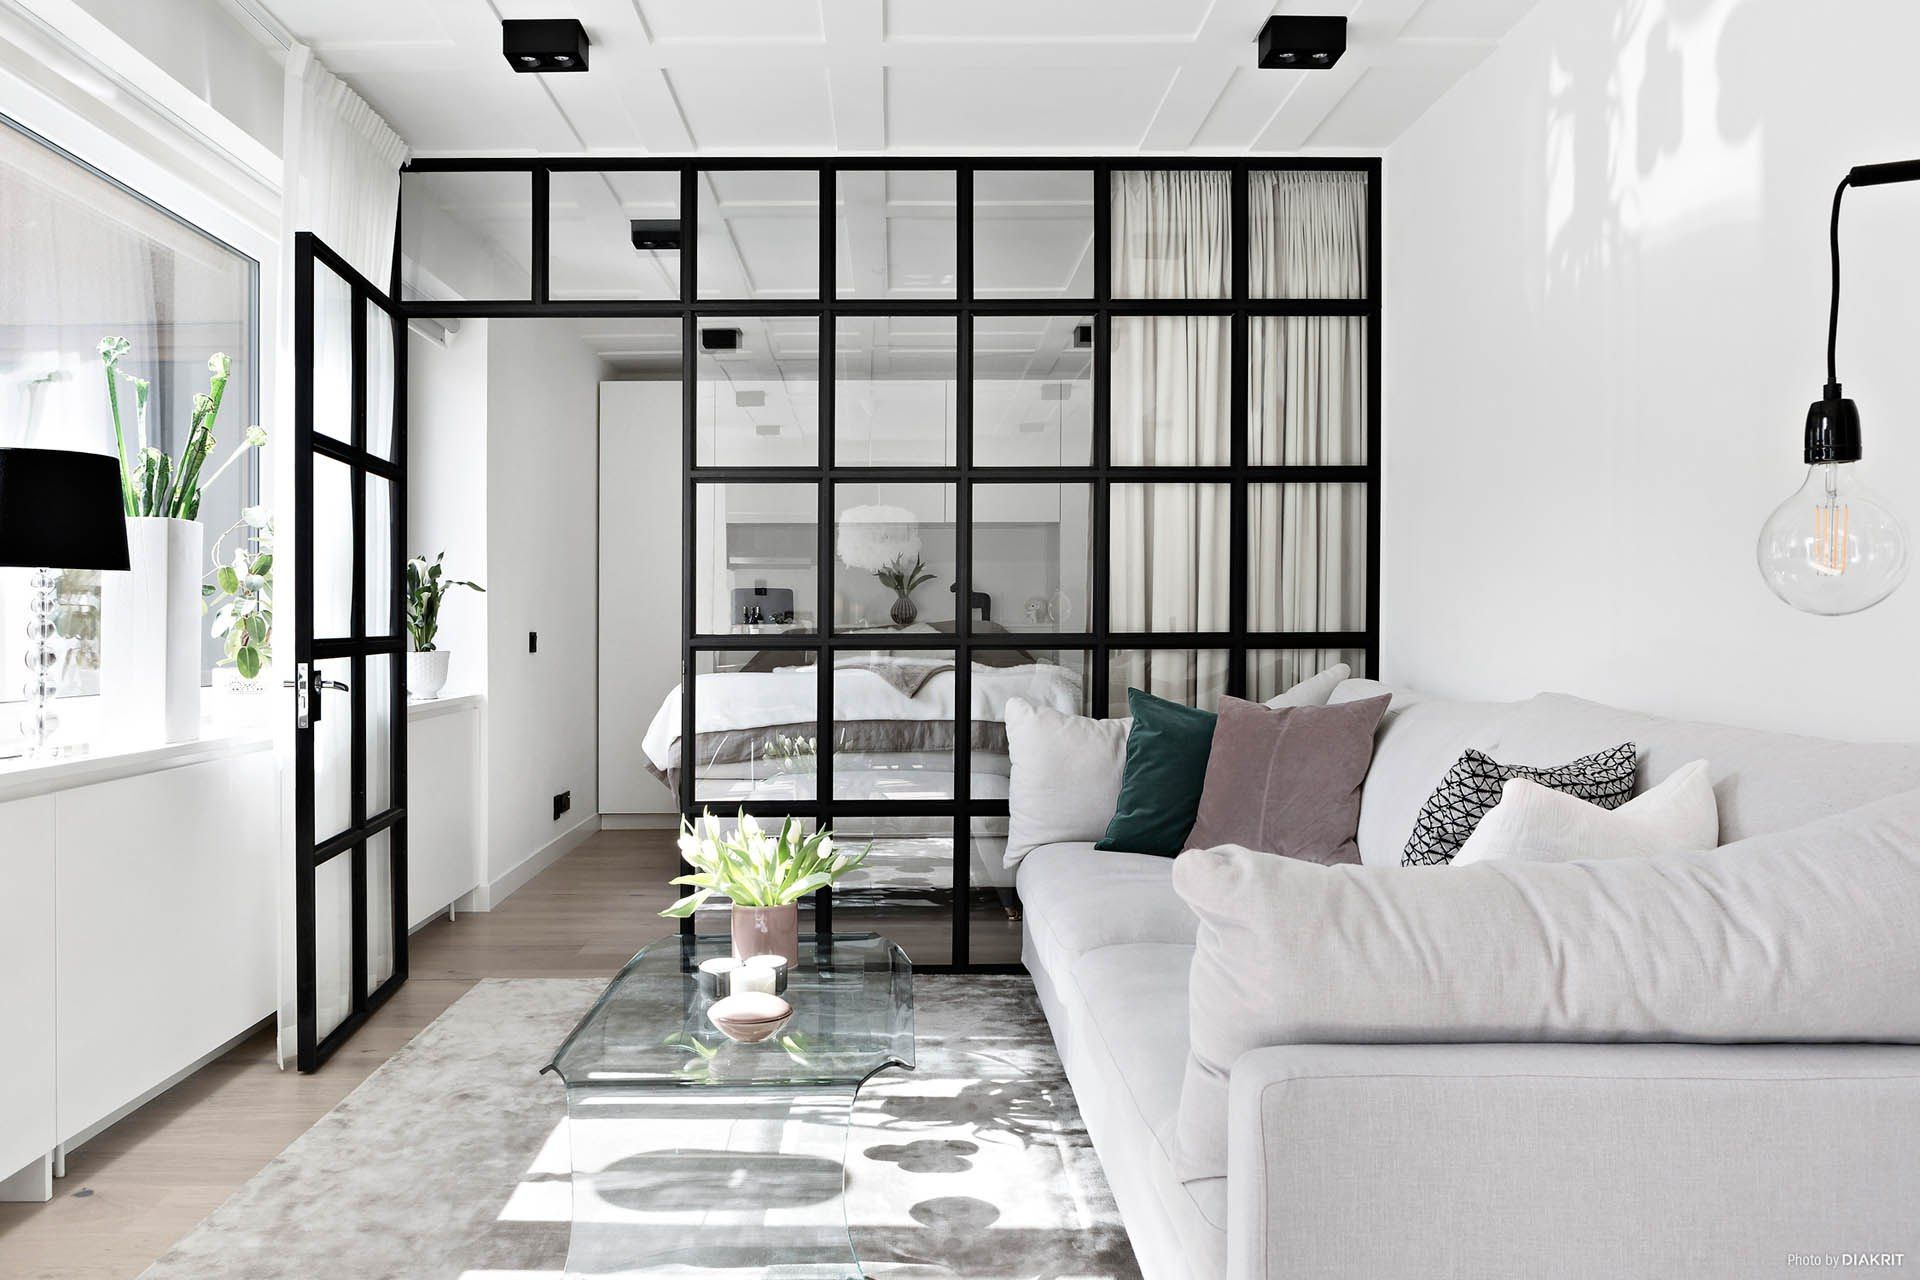 bedroom, wooden floor, white wall, white sofa, glass partition, glass door